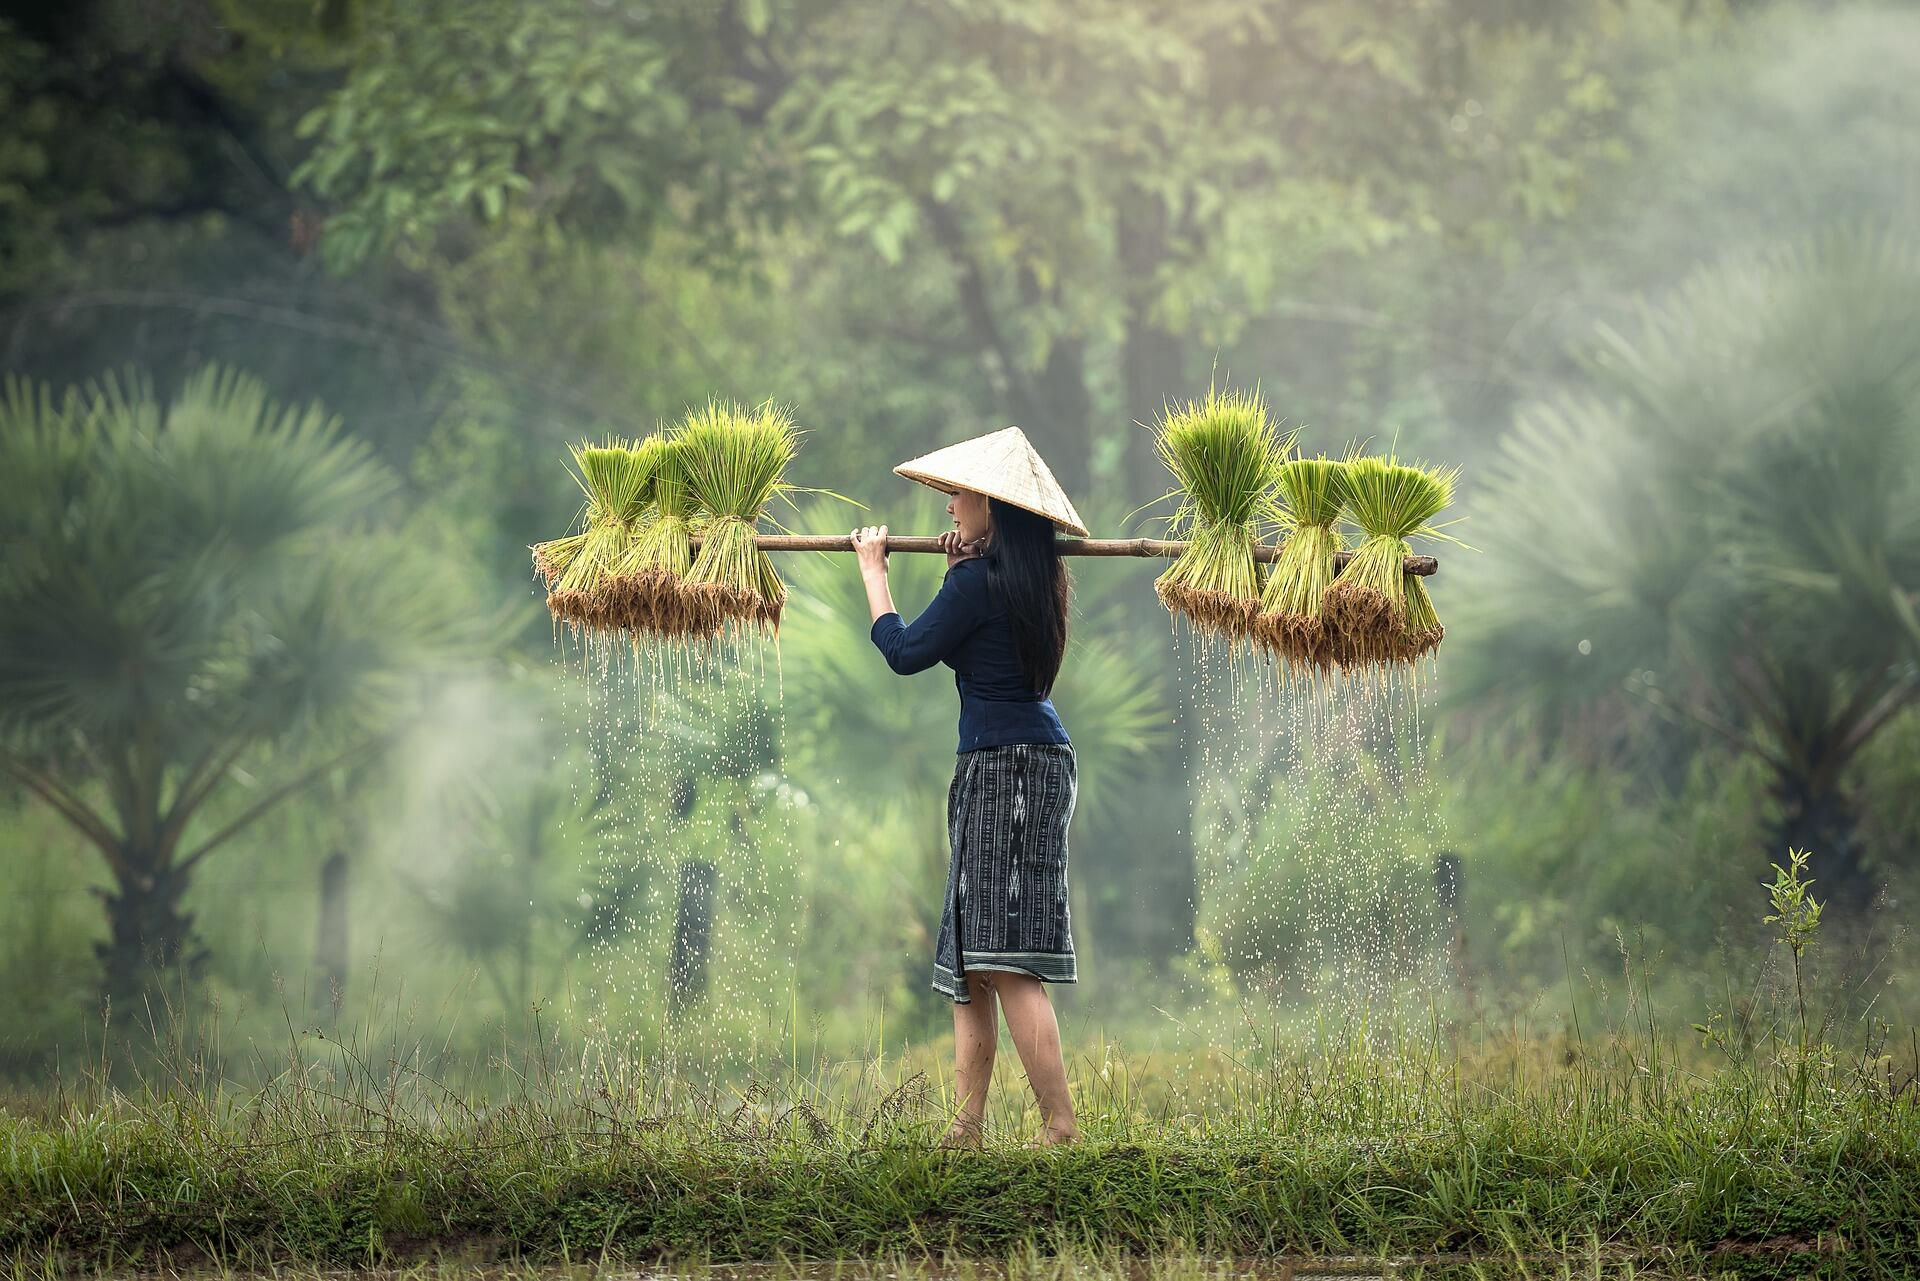 A woman carrying rice plants in Myanmar.